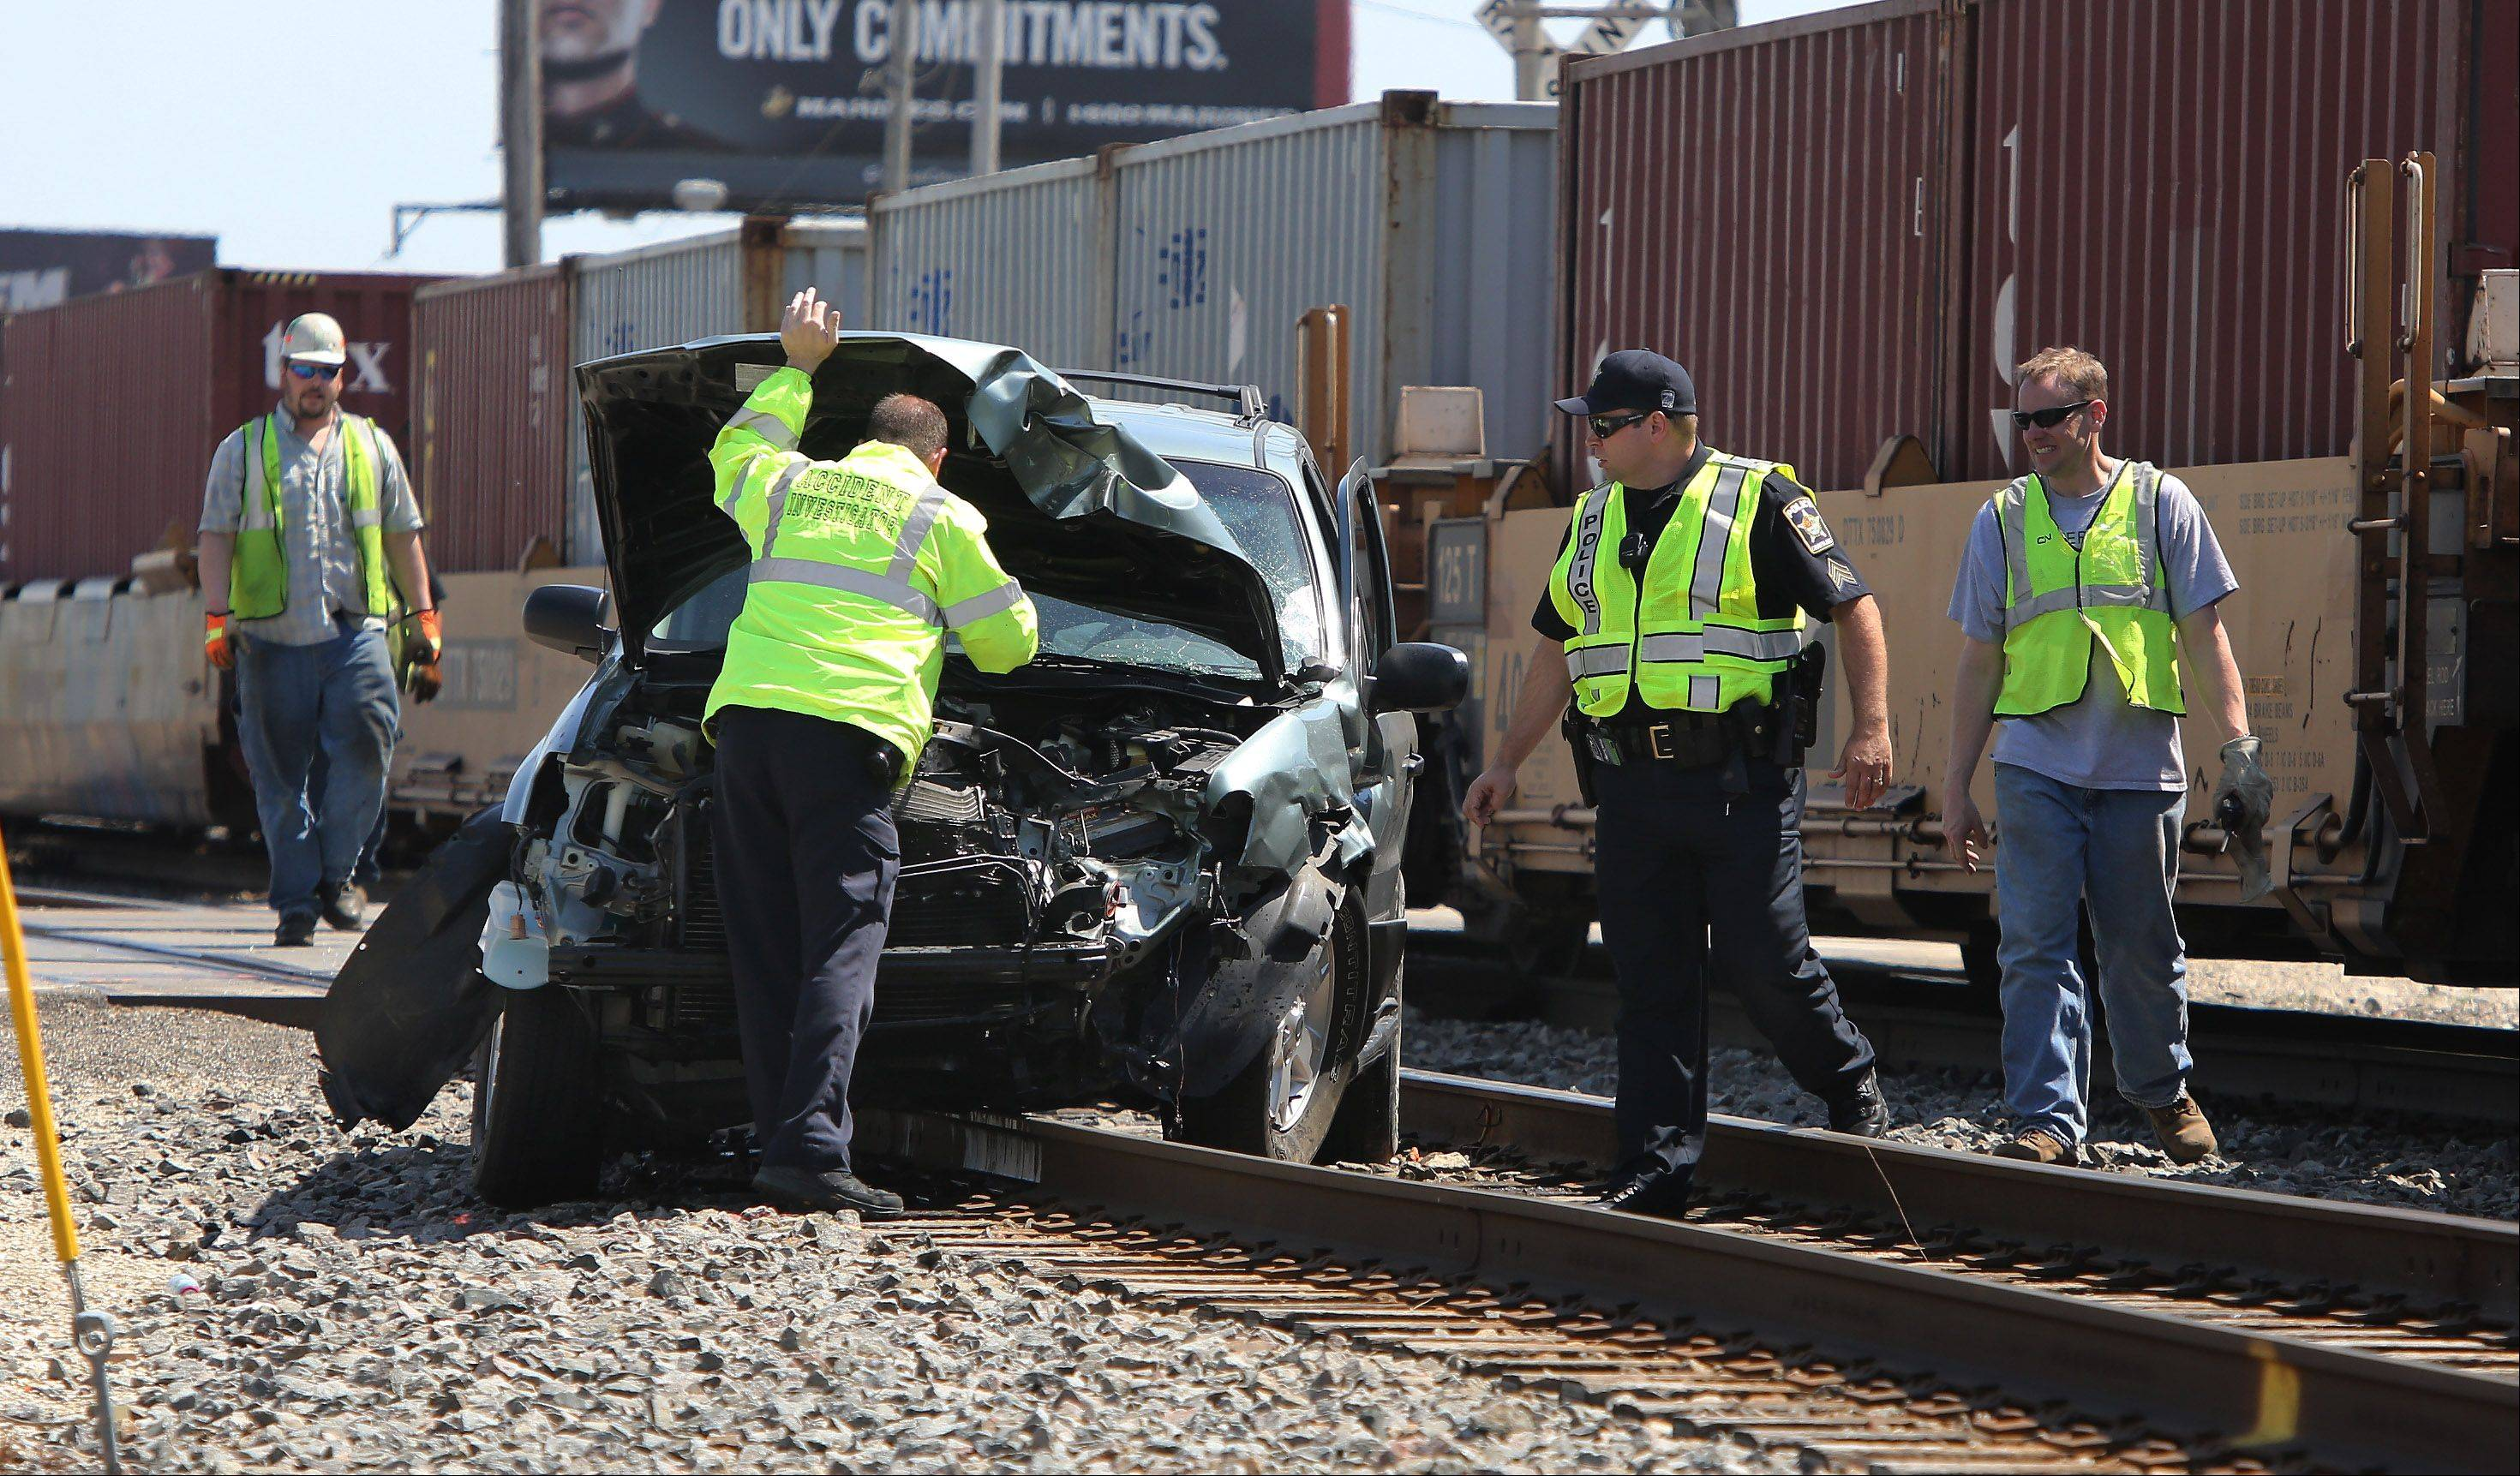 Emergency crews on the scene of a Wednesday afternoon crash involving a train and an SUV at routes 137 and 83 in Grayslake. The driver of the SUV was taken by ambulance to Advocate Condell Medical Center.